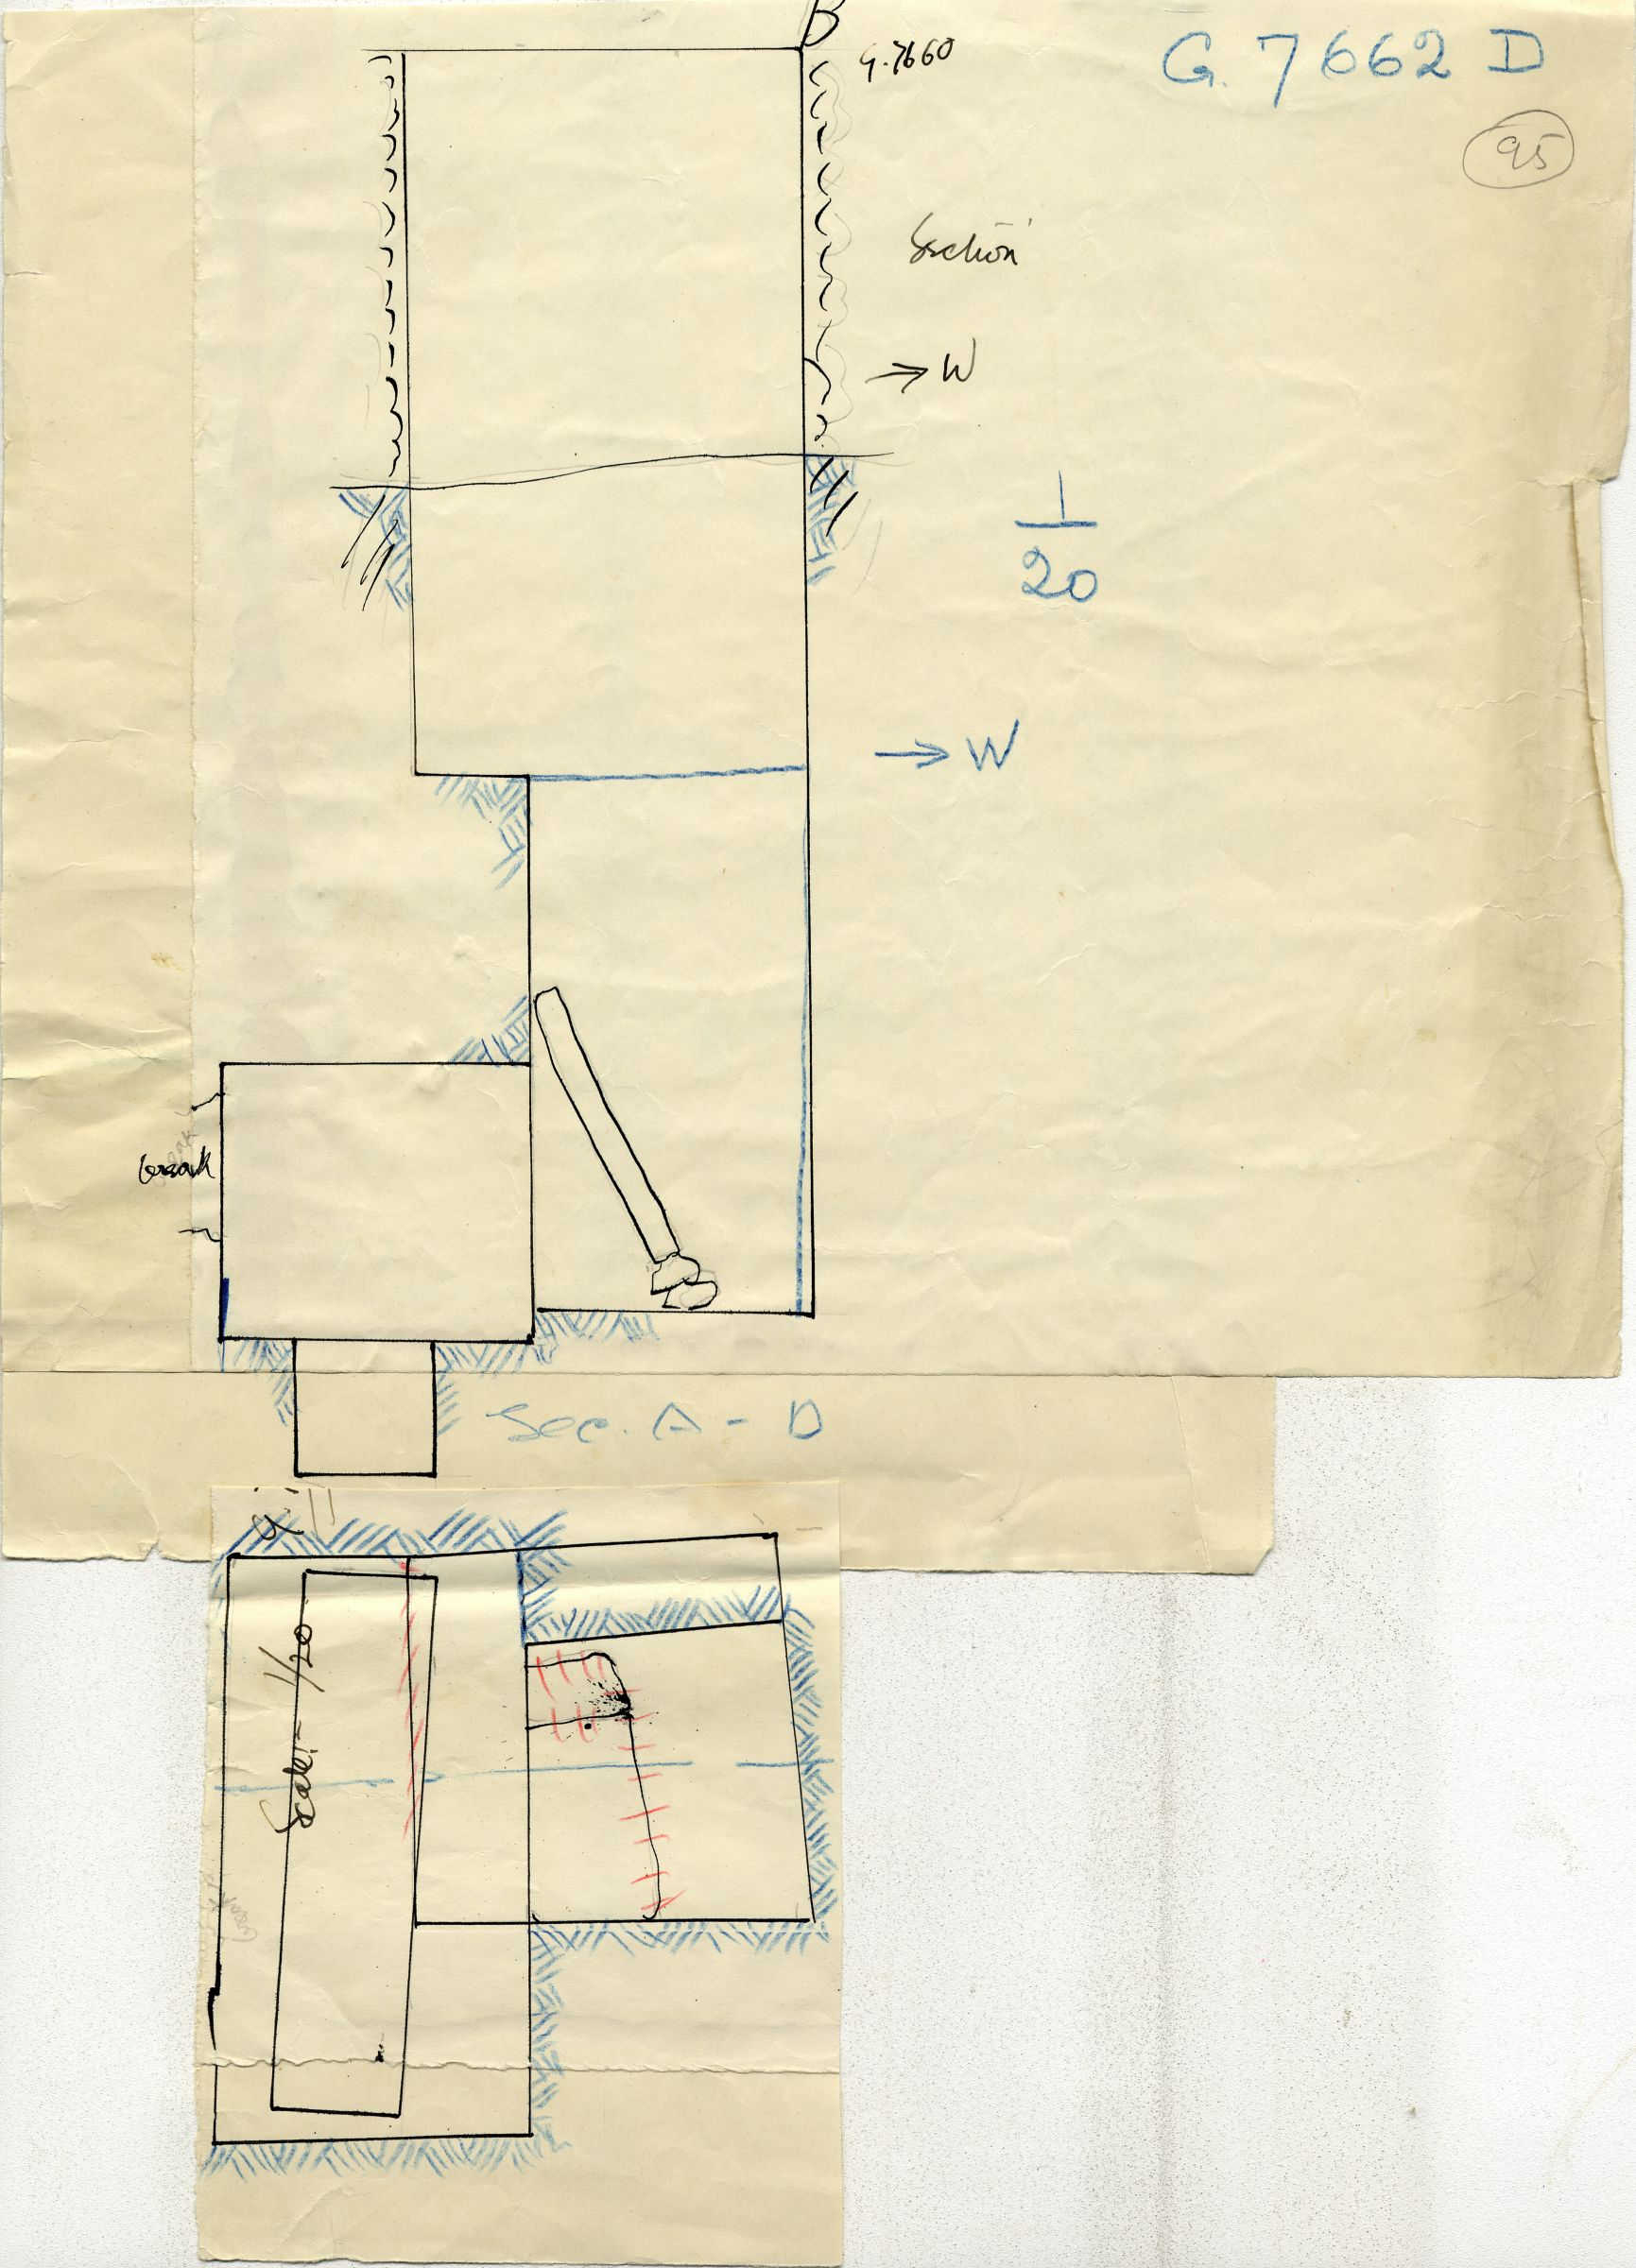 Maps and plans: G 7662, Shaft D